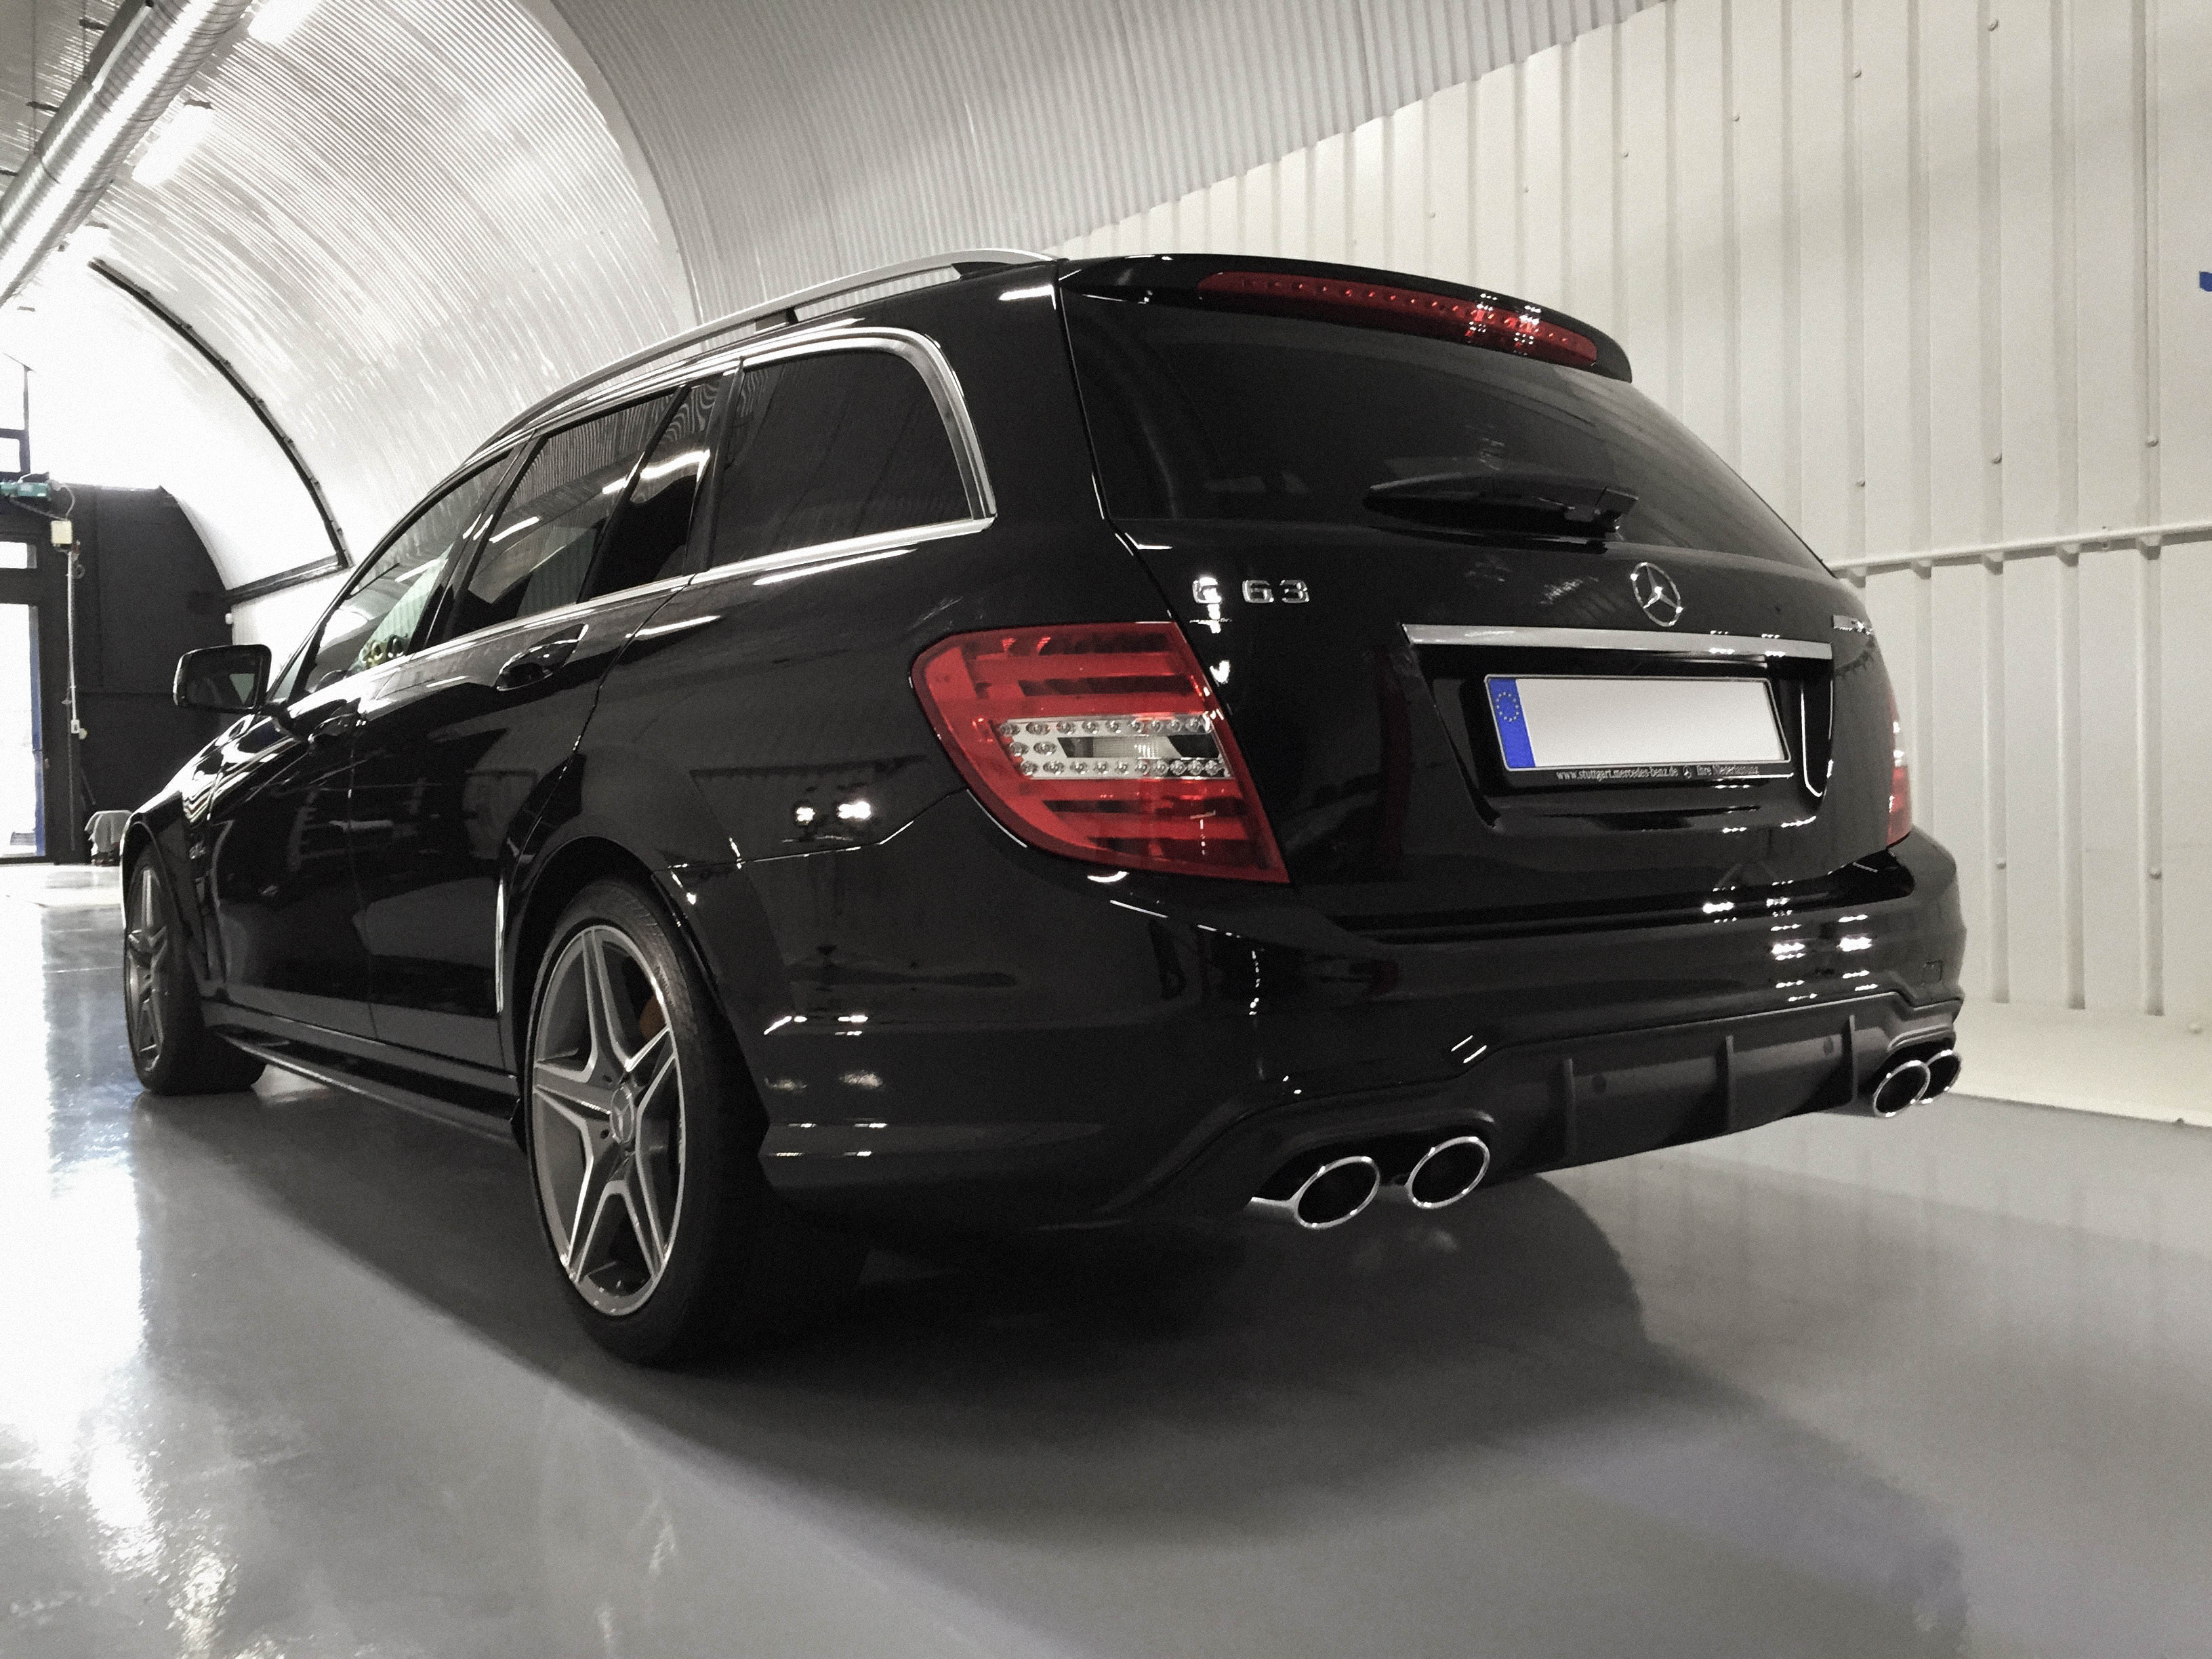 Mercedes C63 Touring –Rear view